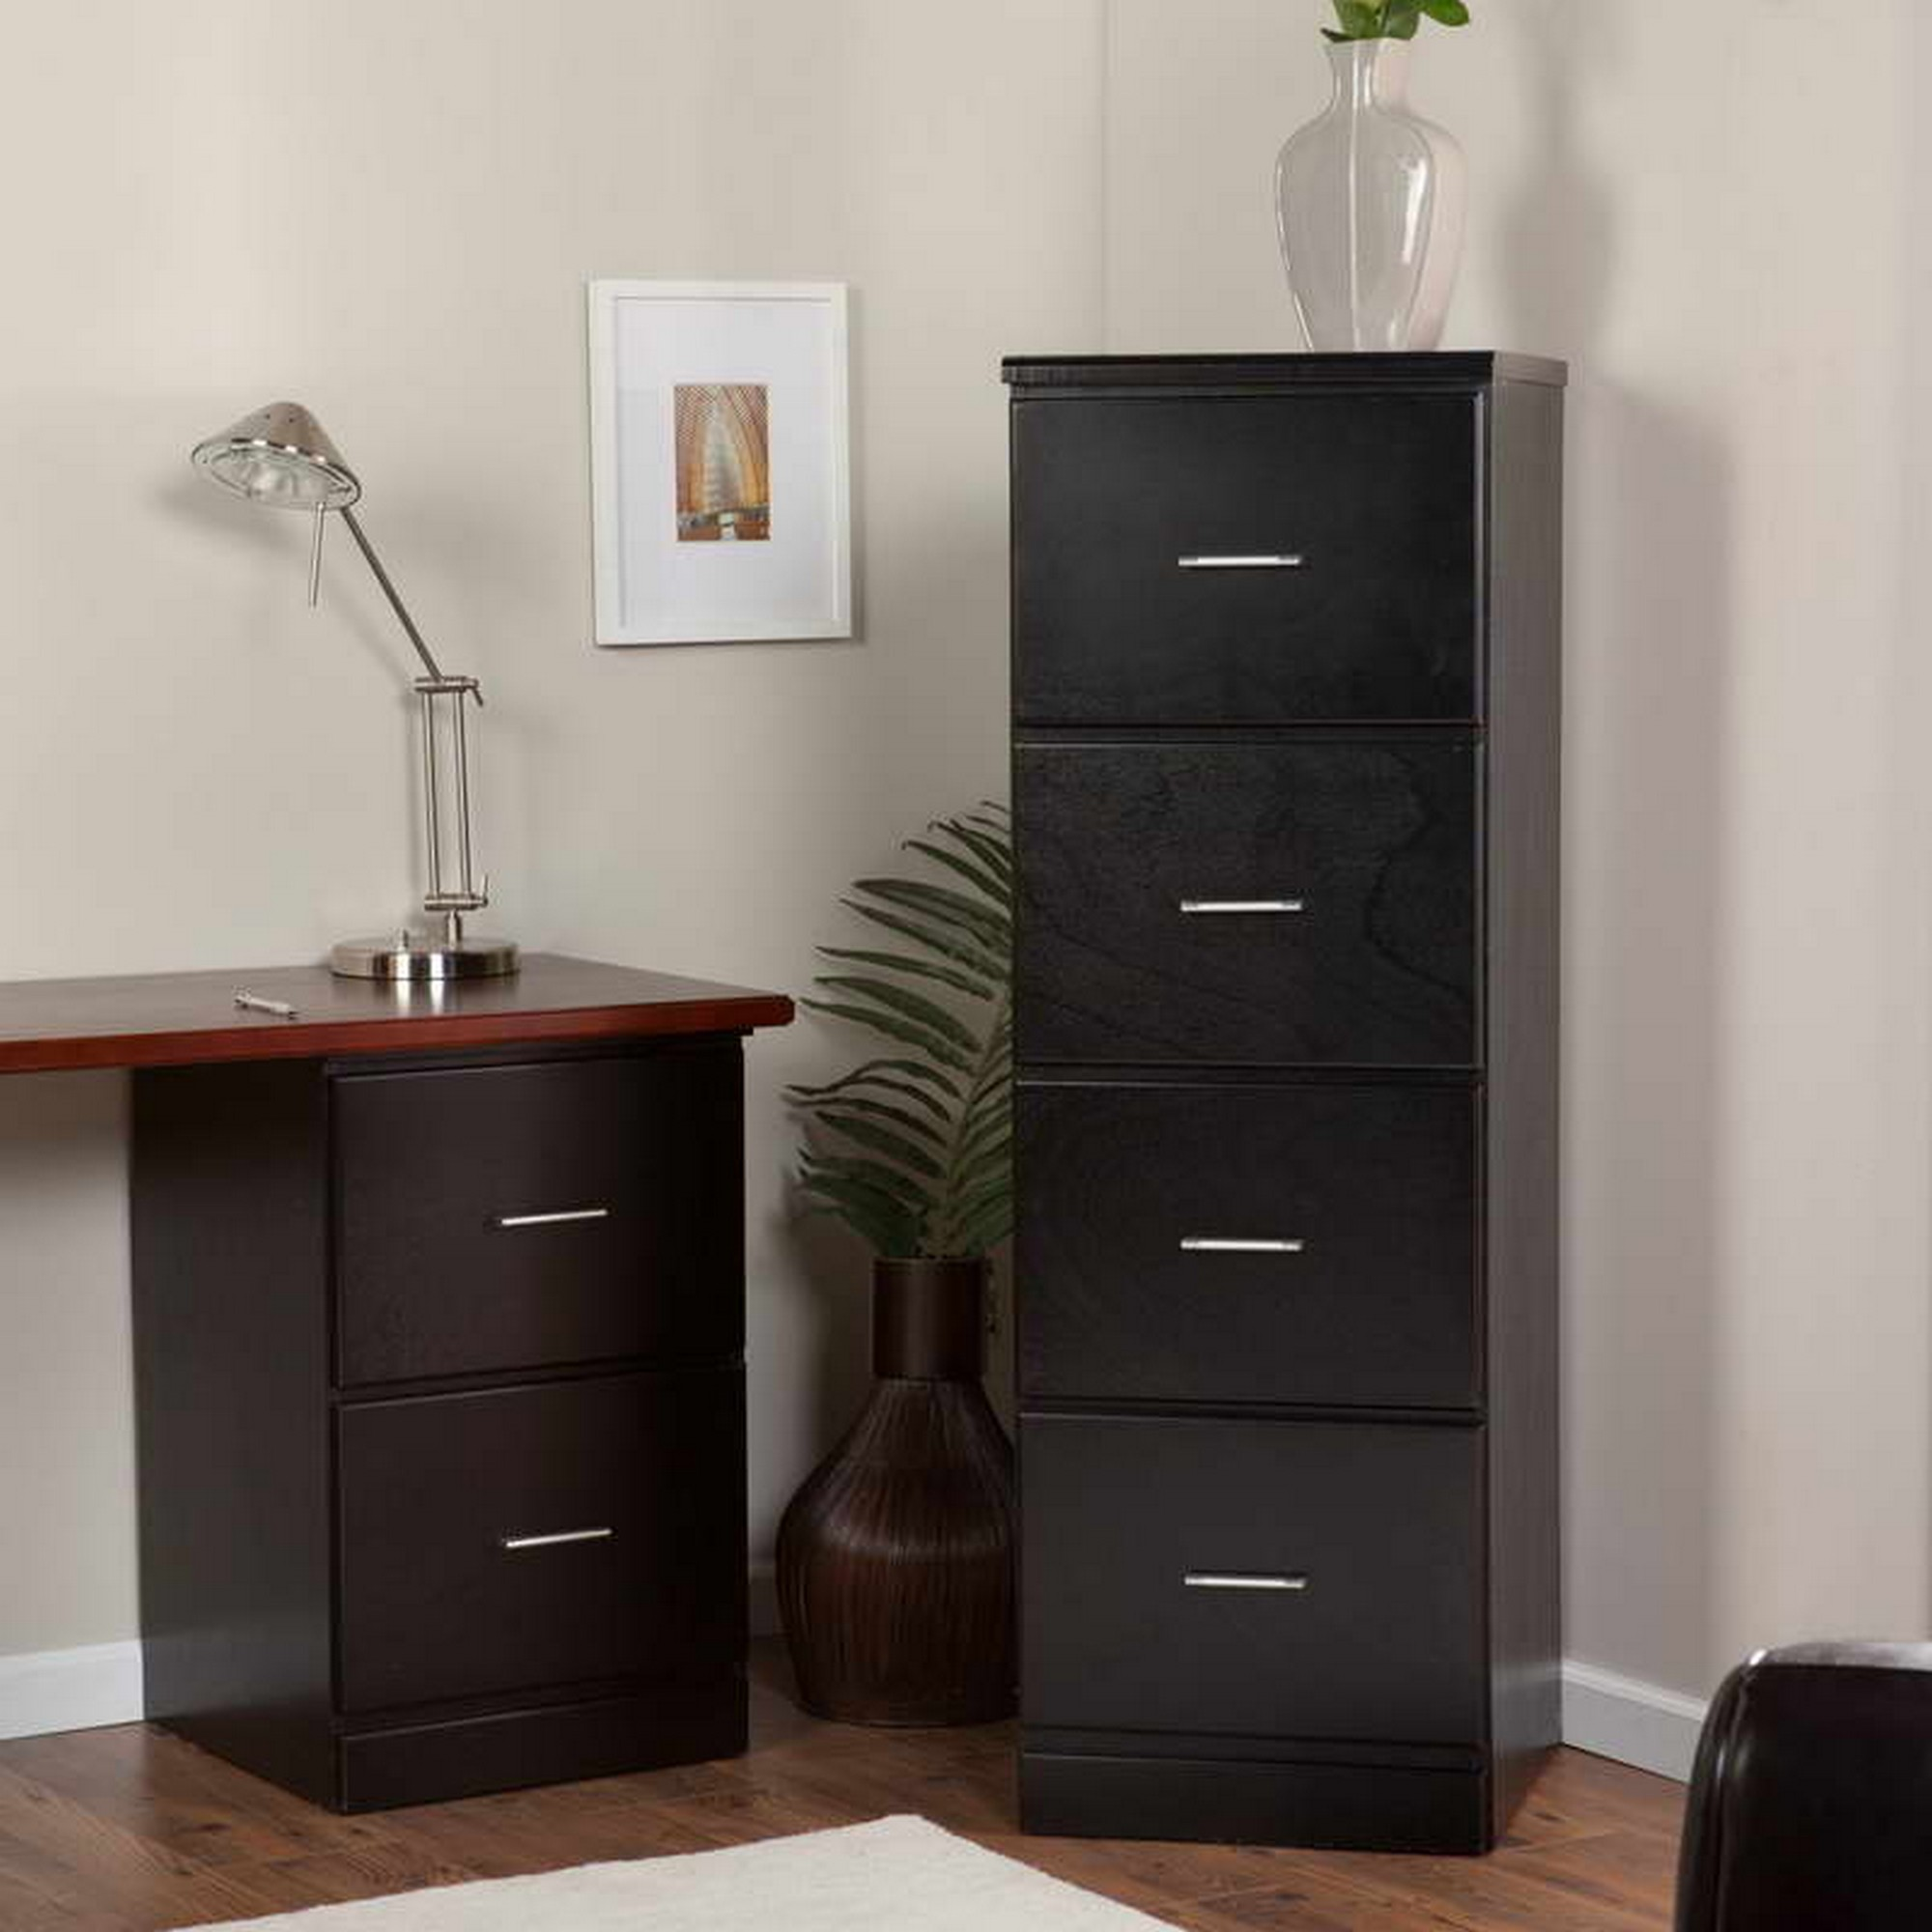 Metal Dining Room Furniture Decorative Filing Cabinets For Both Style And Function